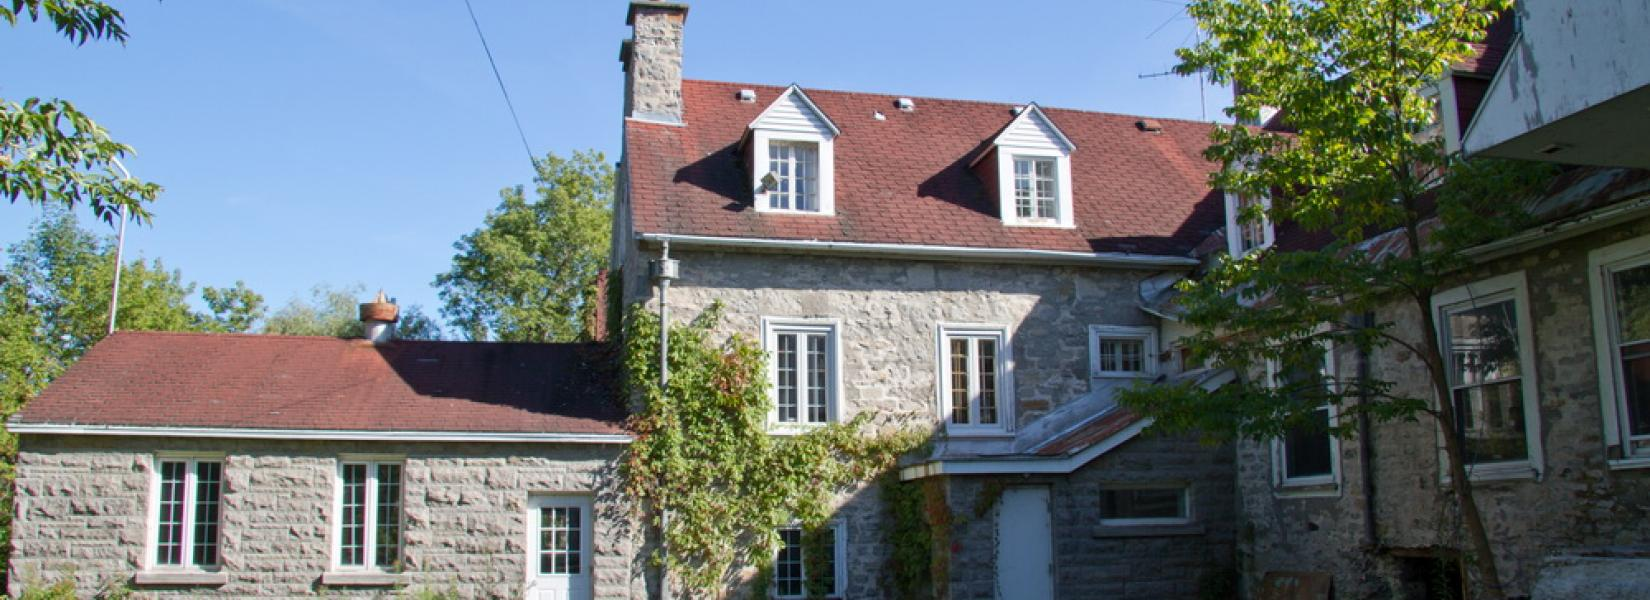 The Mascouche seigniorial mansion, the last vestige of a bygone era